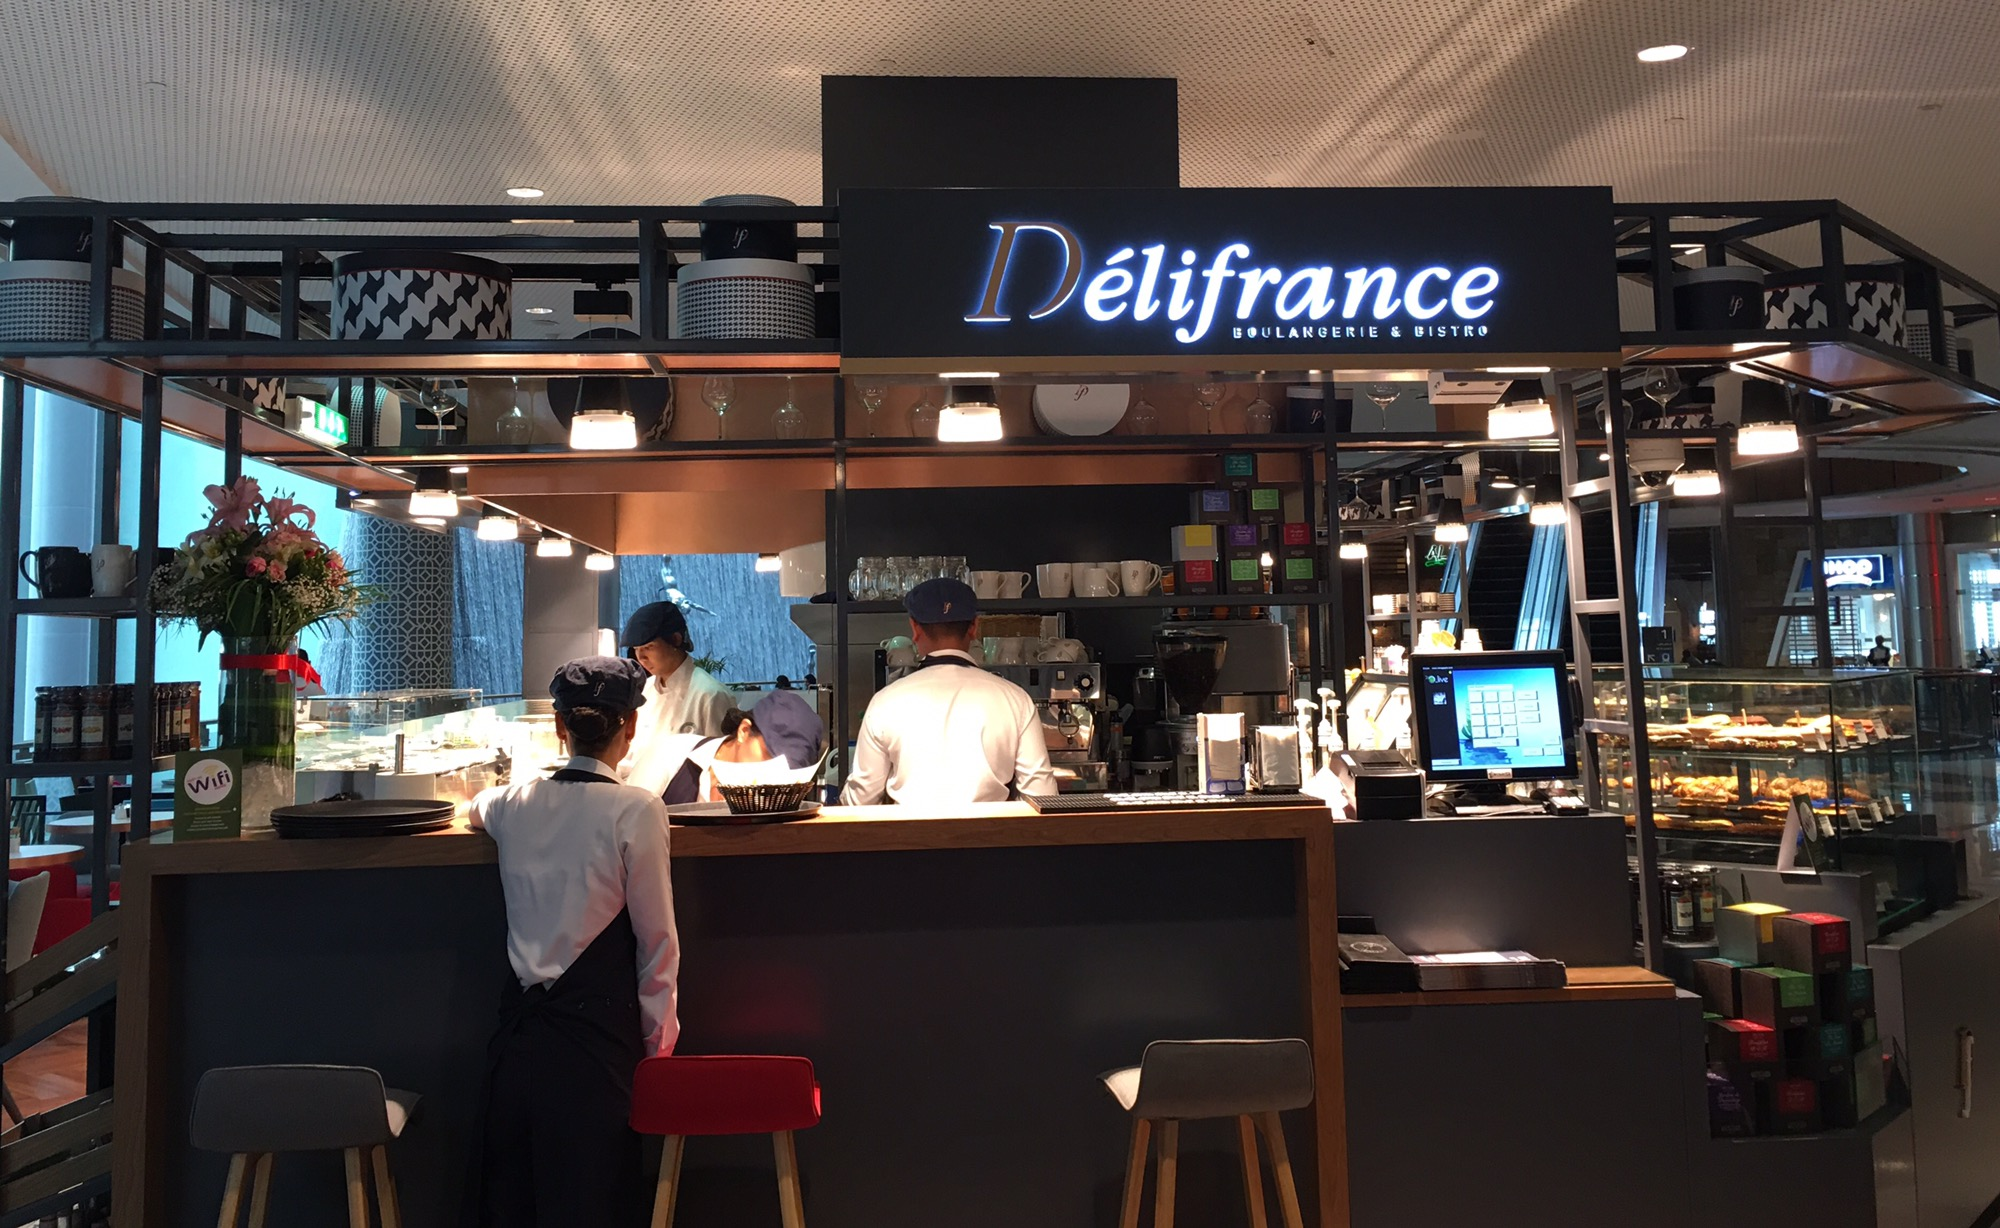 délifrance-now open in dubai mall – megsblogged